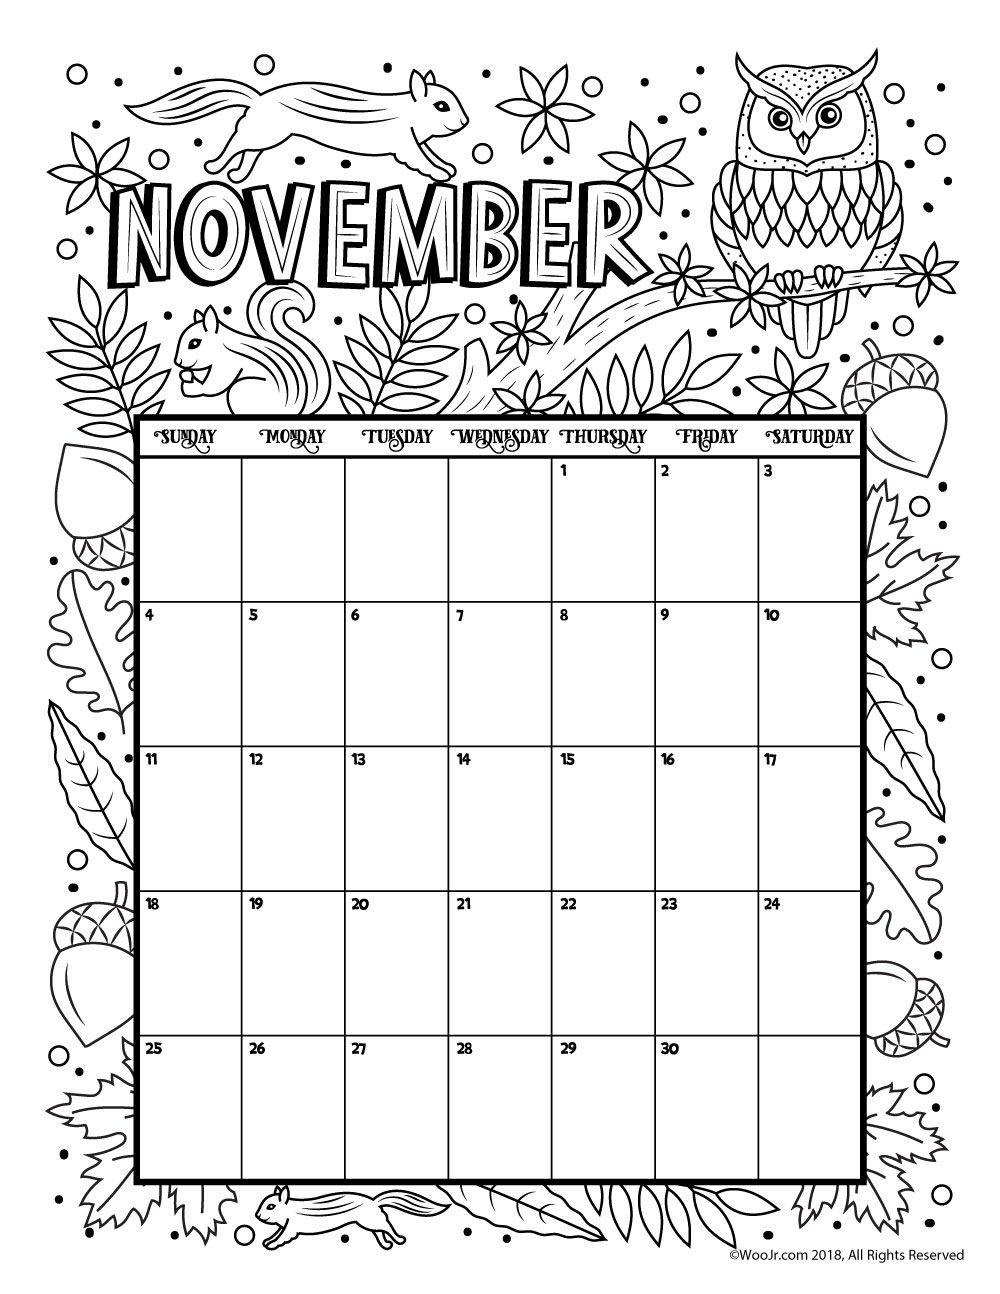 coloring calendars sector pages - photo#40